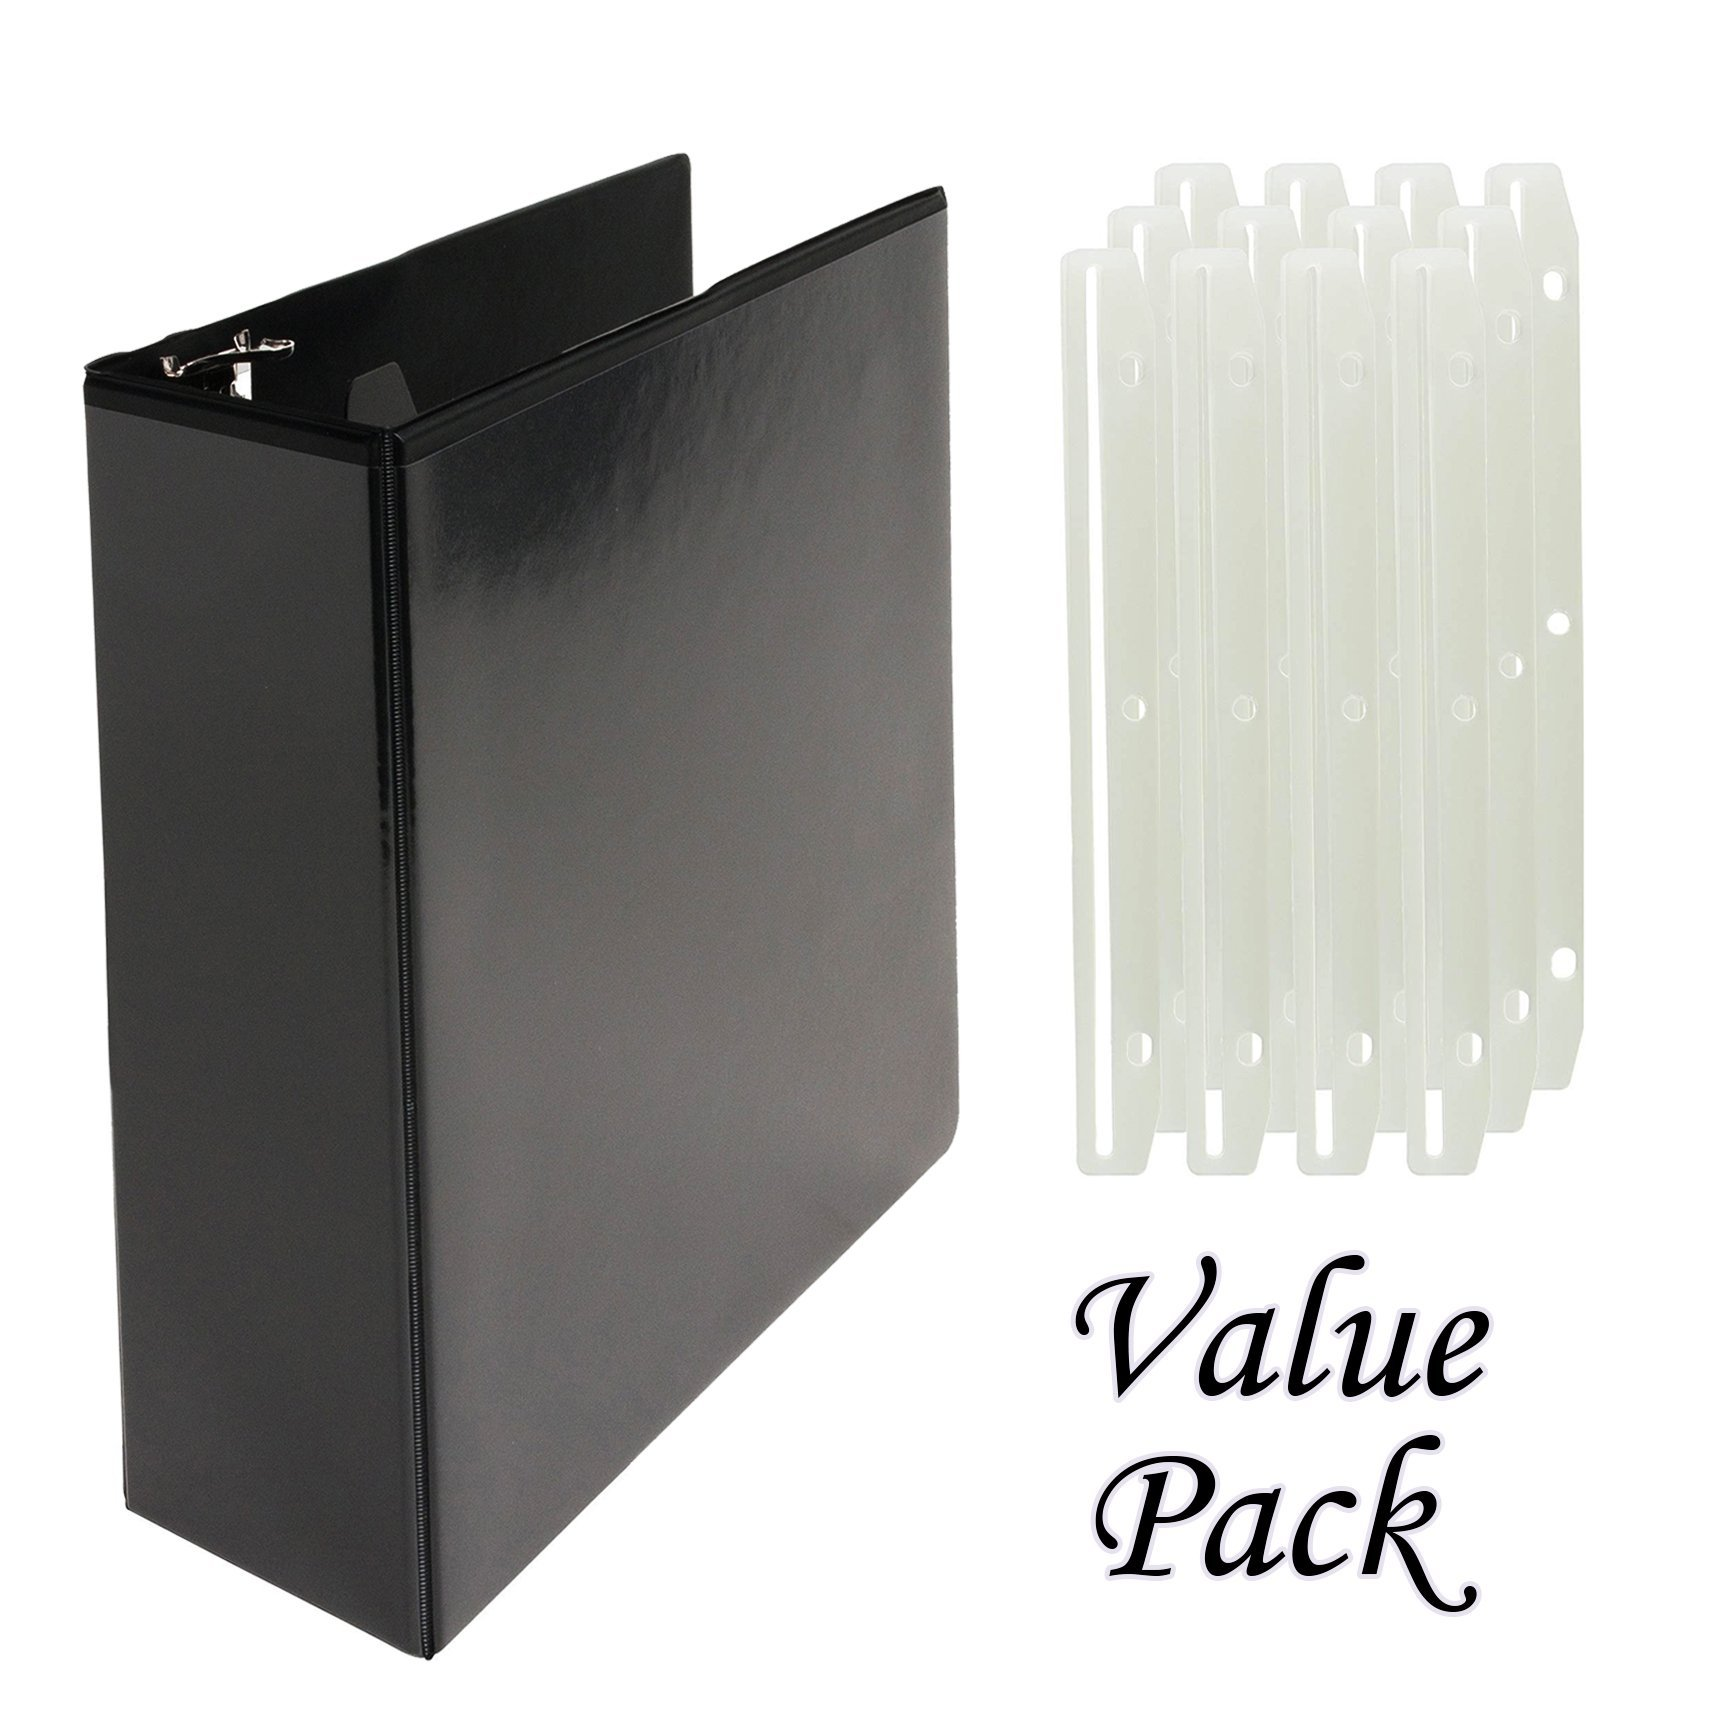 3 Inch Magazine/Catalog Binders, View Binder, with 3-Hole Punched Plastic Strip Magazine Holders 12 Pcs – Perfect for Magazine/Catalog Organizing, Collecting and Storaging – Value Set - (Black Binder)